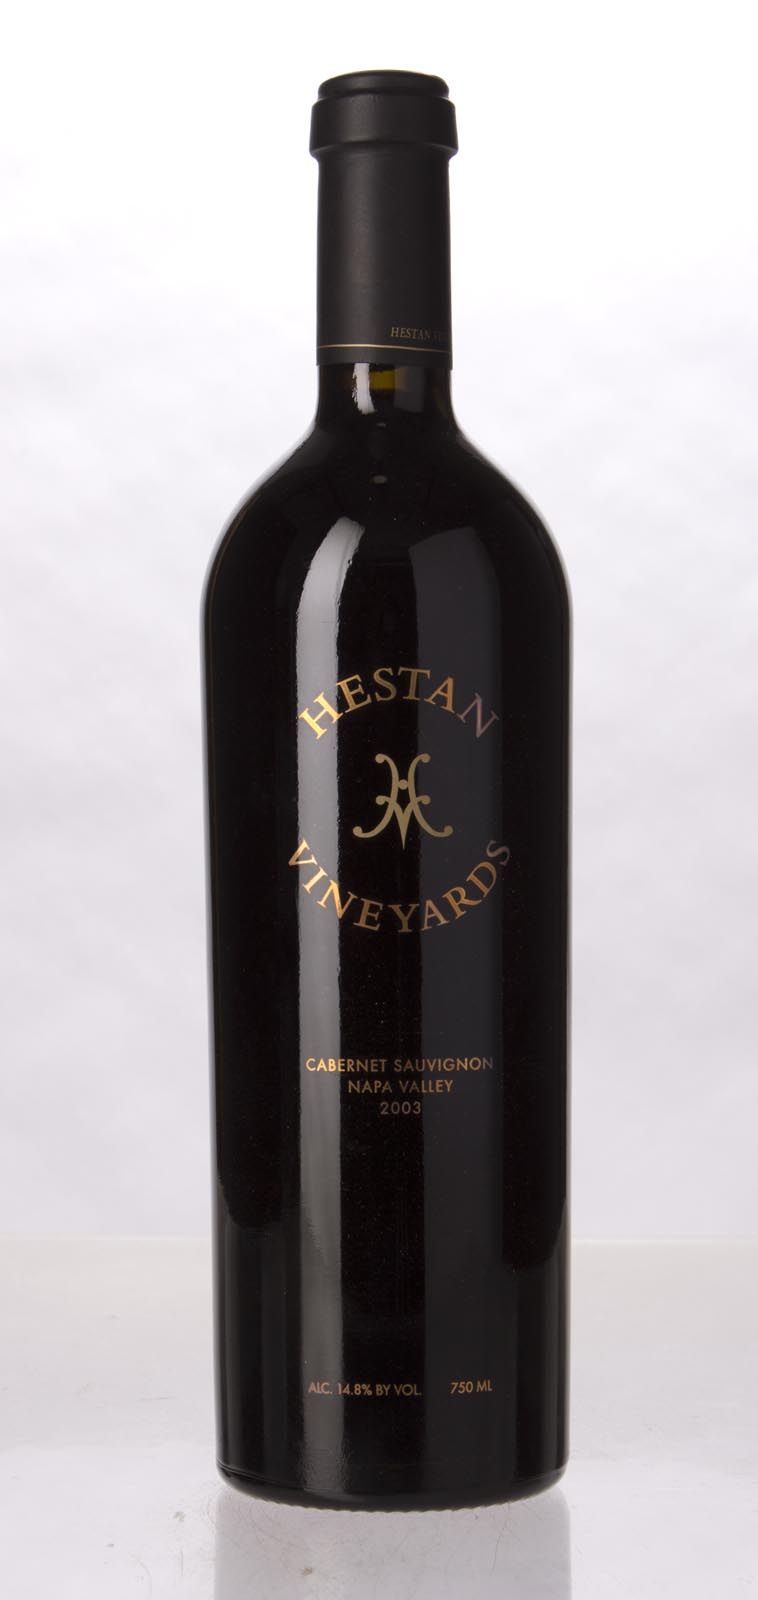 Hestan Vineyards Cabernet Sauvignon Napa Valley 2003, 750mL (WA93) from The BPW - Merchants of rare and fine wines.